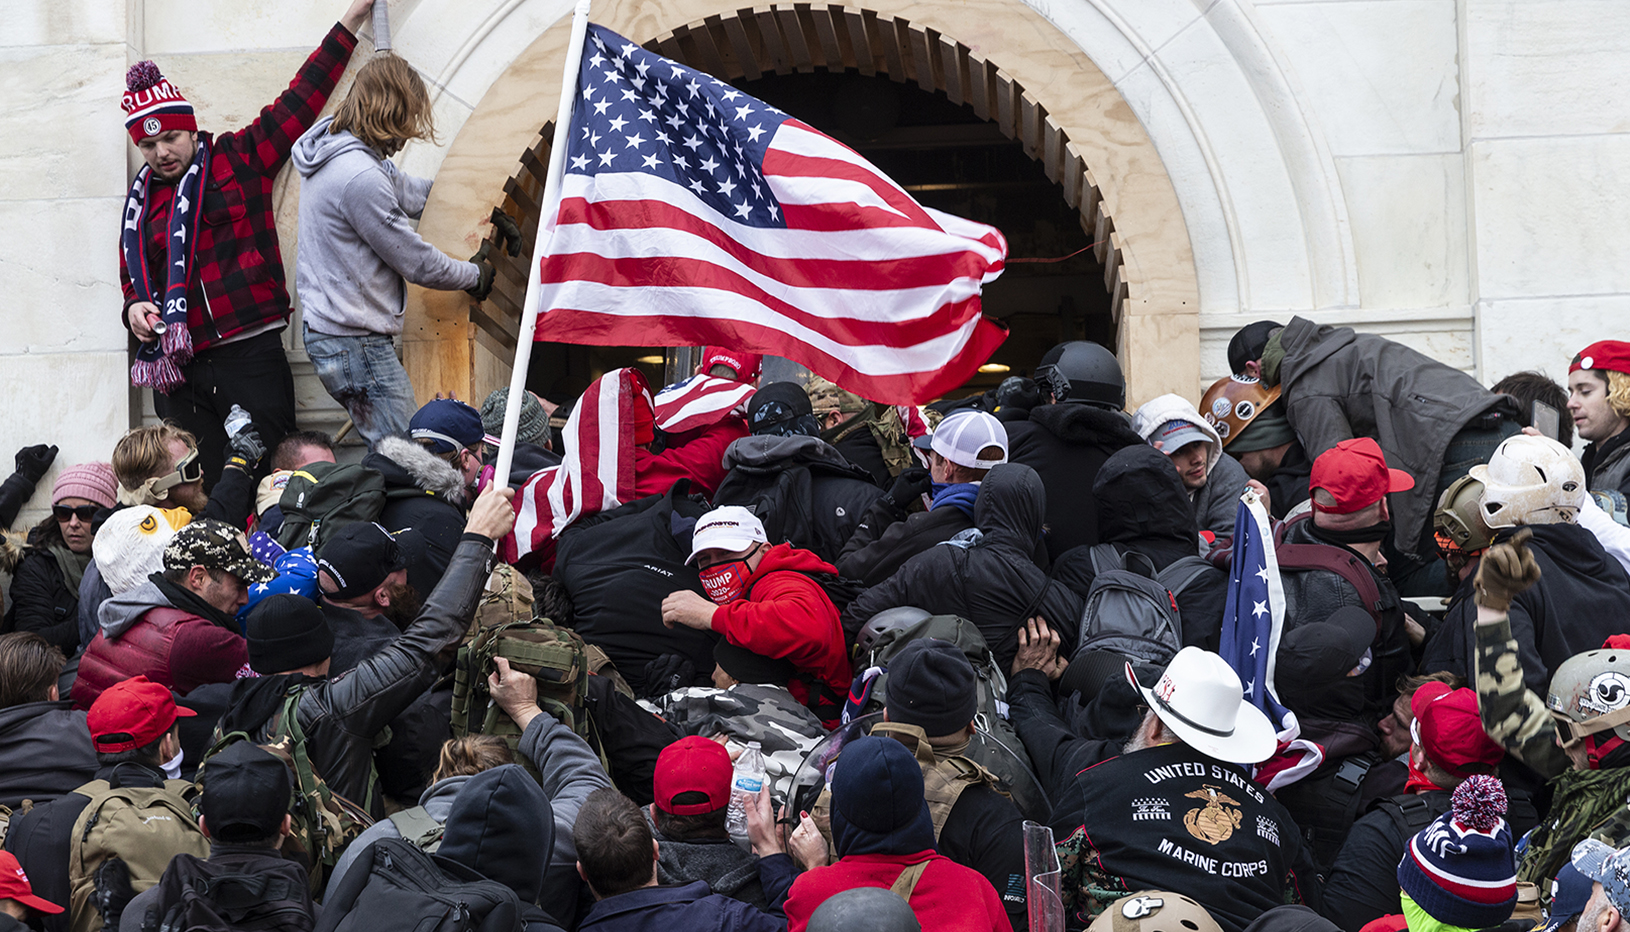 Insurrectionists pile on top of one another at the US Capitol on Jan. 6, 2021.